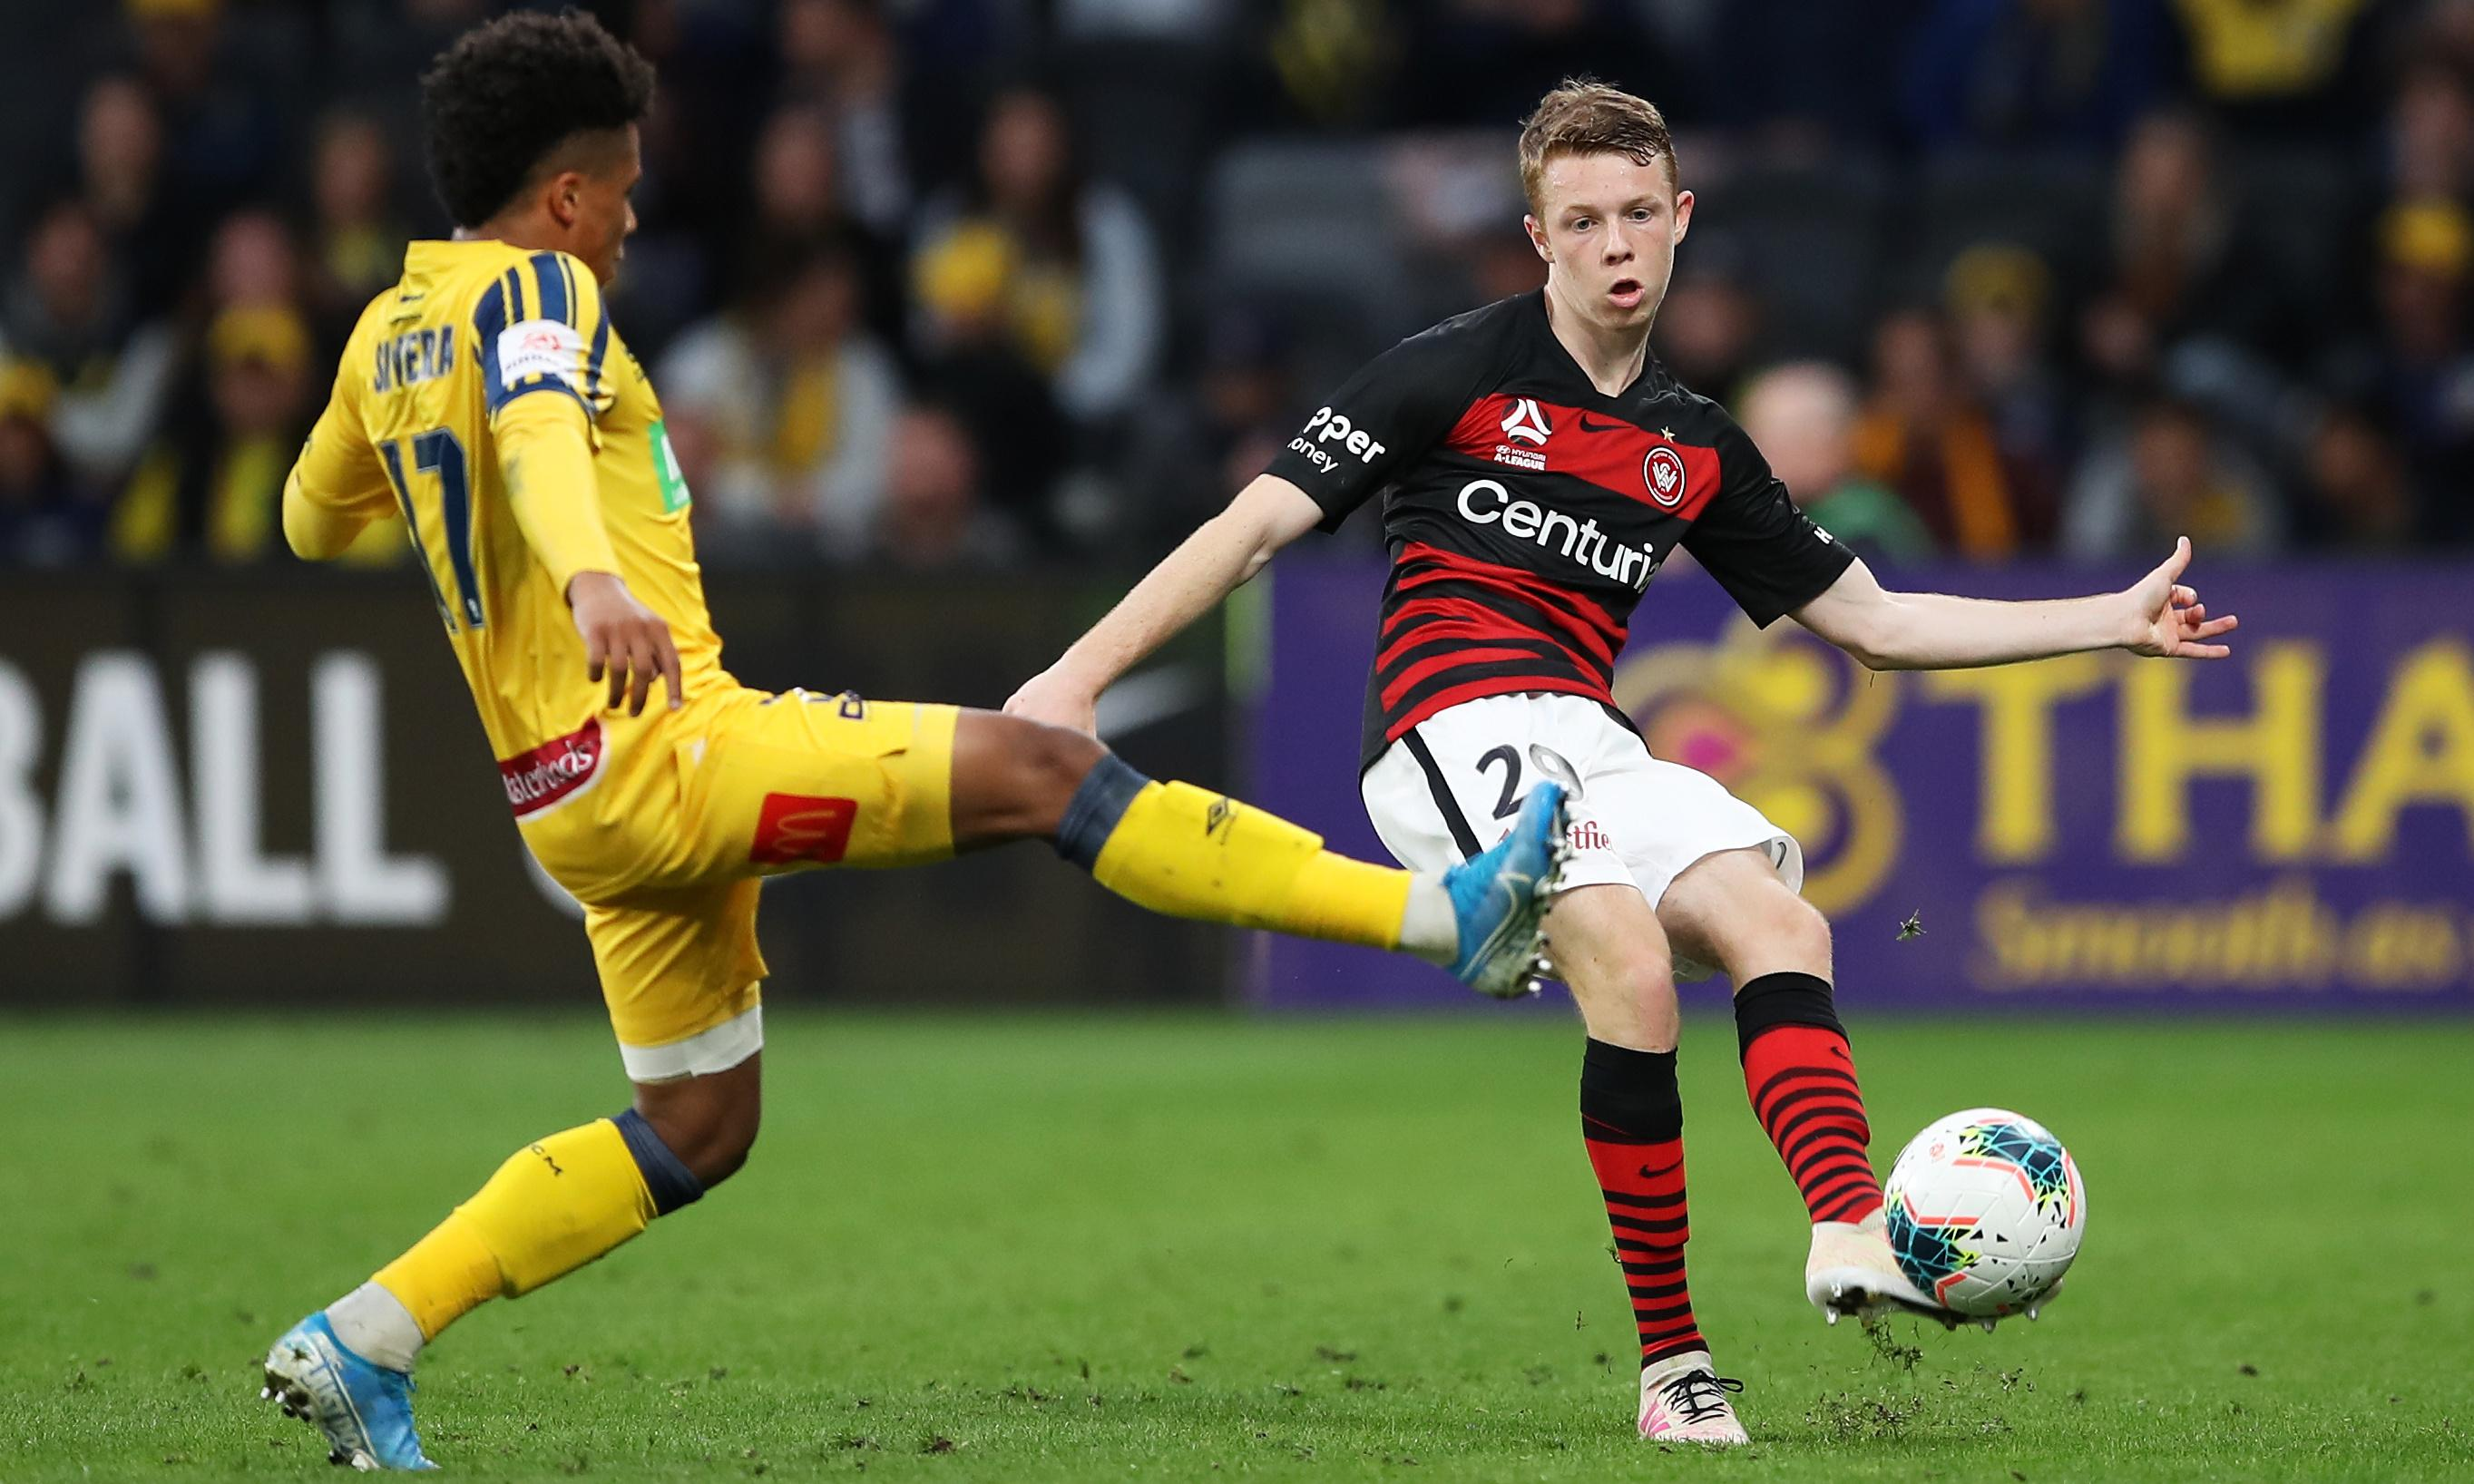 Emergence of new teenage crop best advert for returning A-League